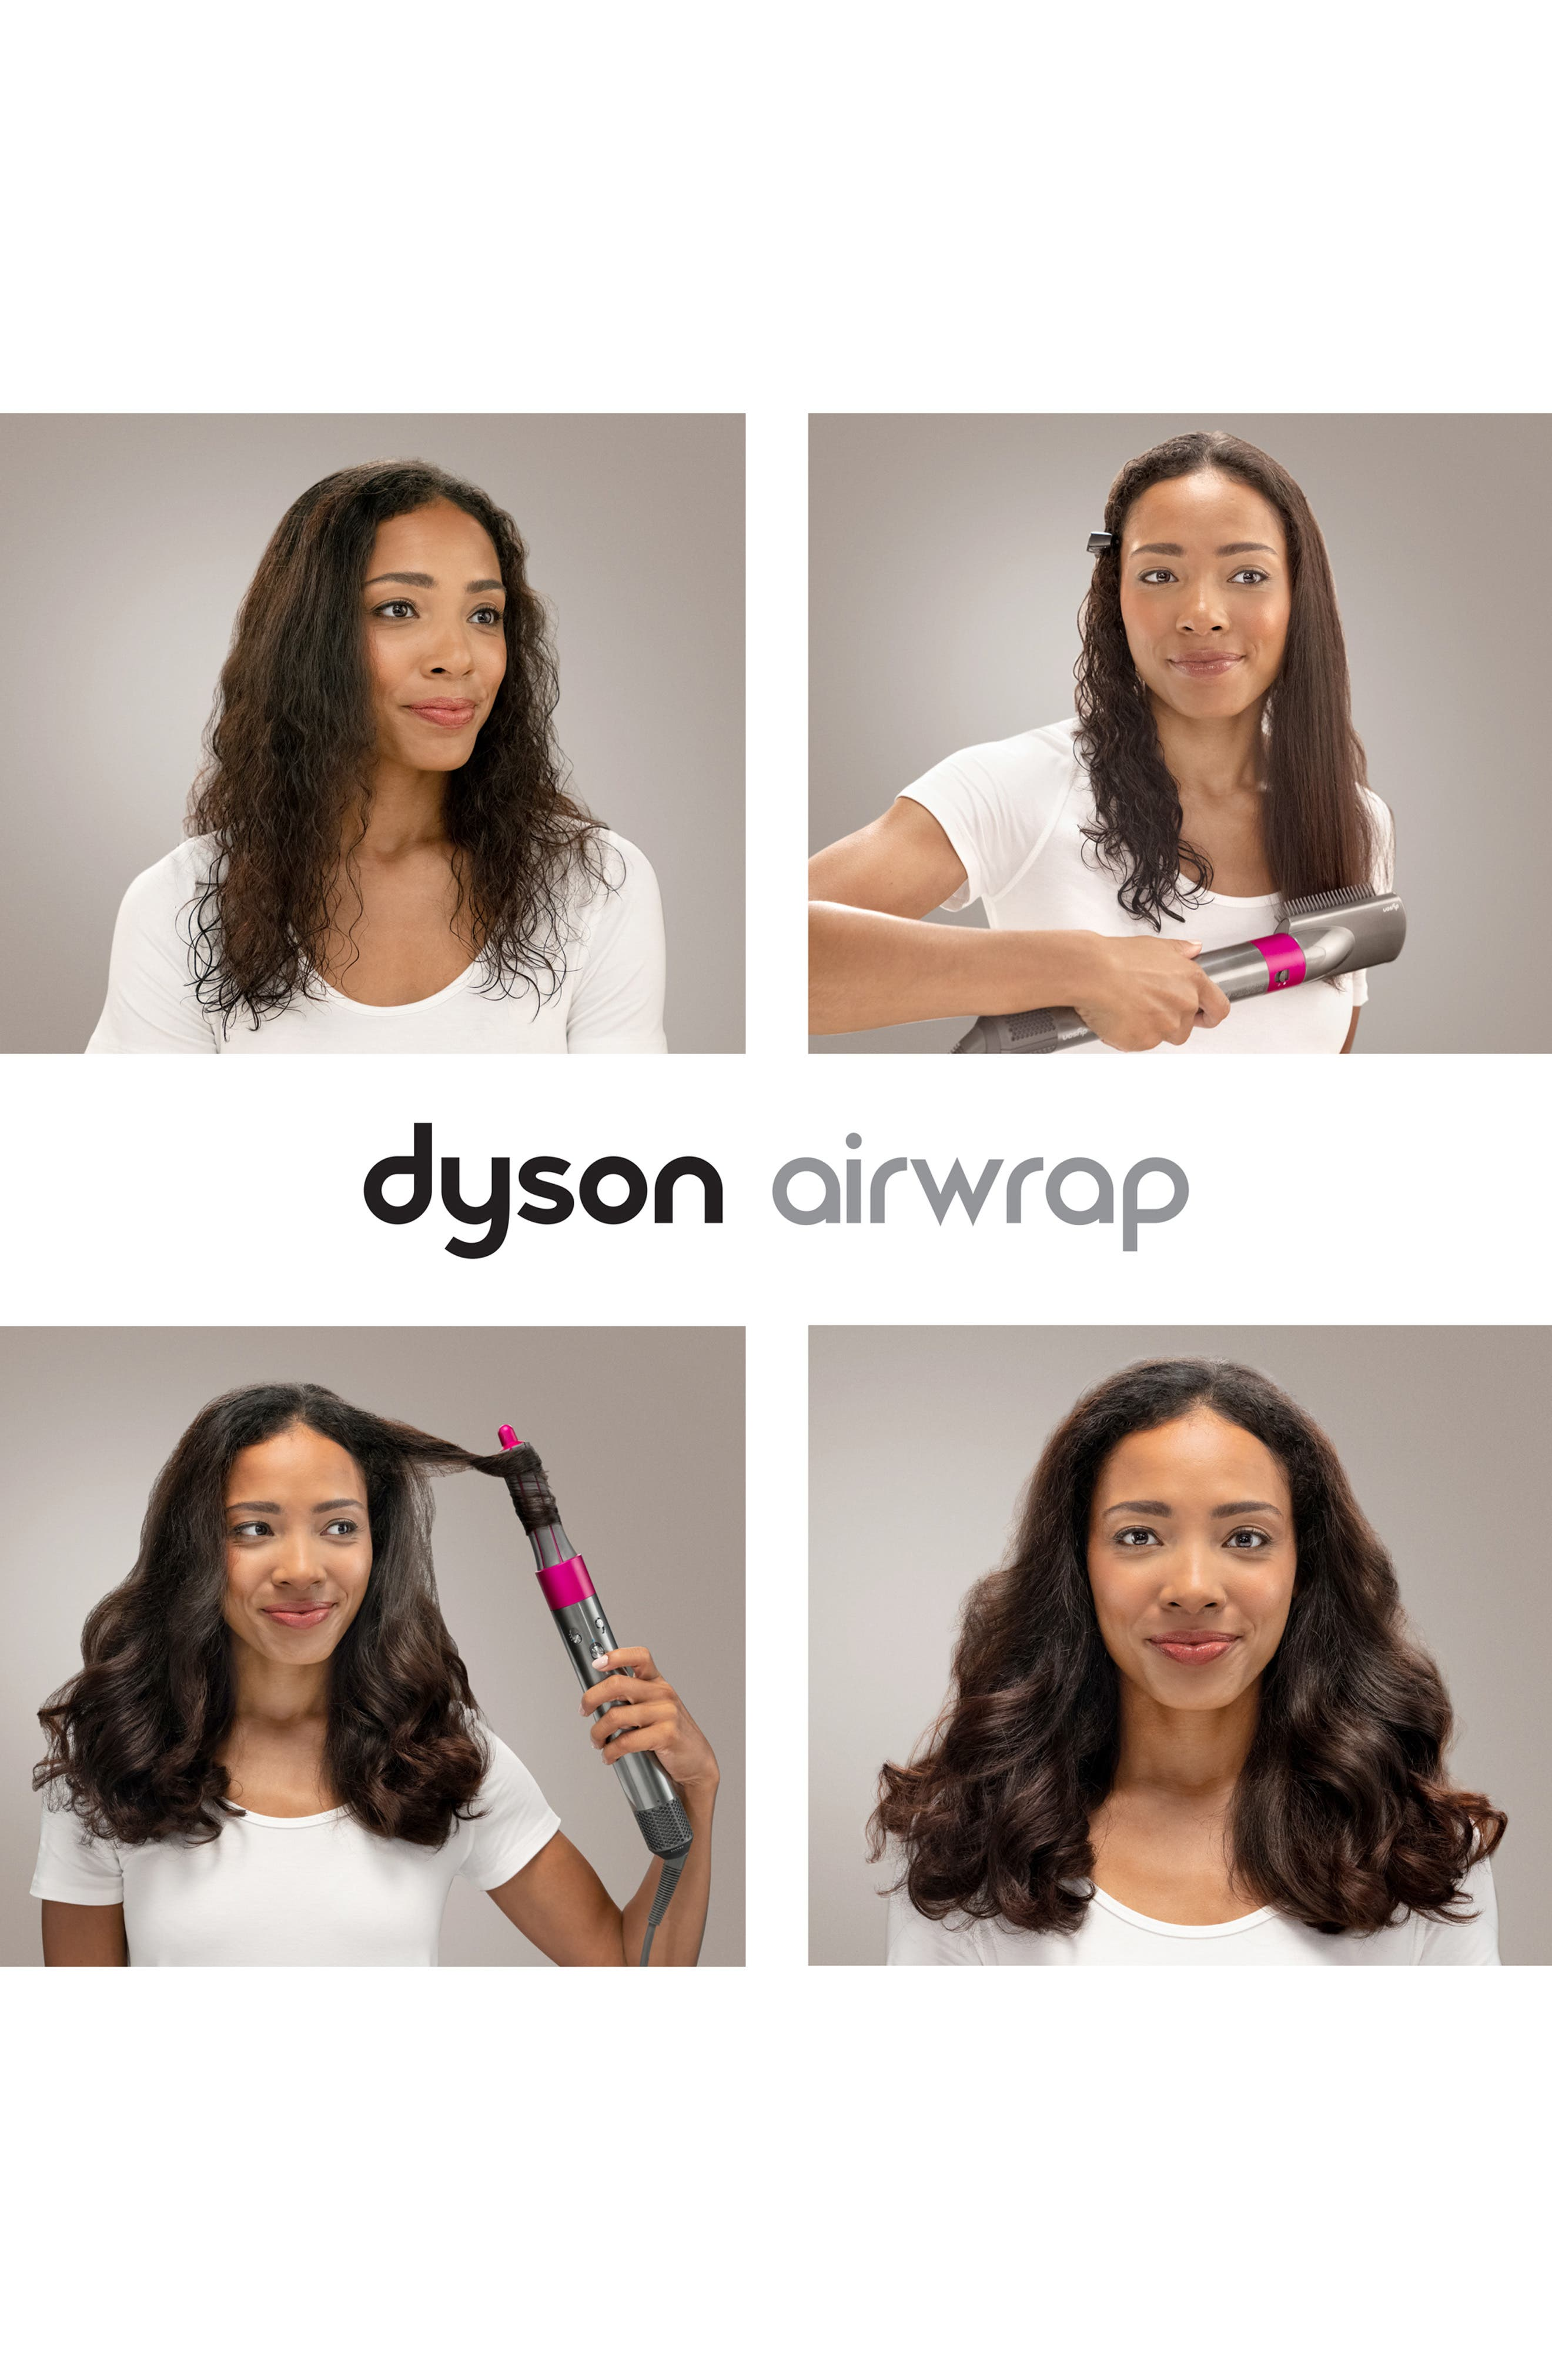 DYSON,                             Airwrap<sup>™</sup> Complete Styler – for Multiple Hair Types and Styles,                             Alternate thumbnail 2, color,                             000